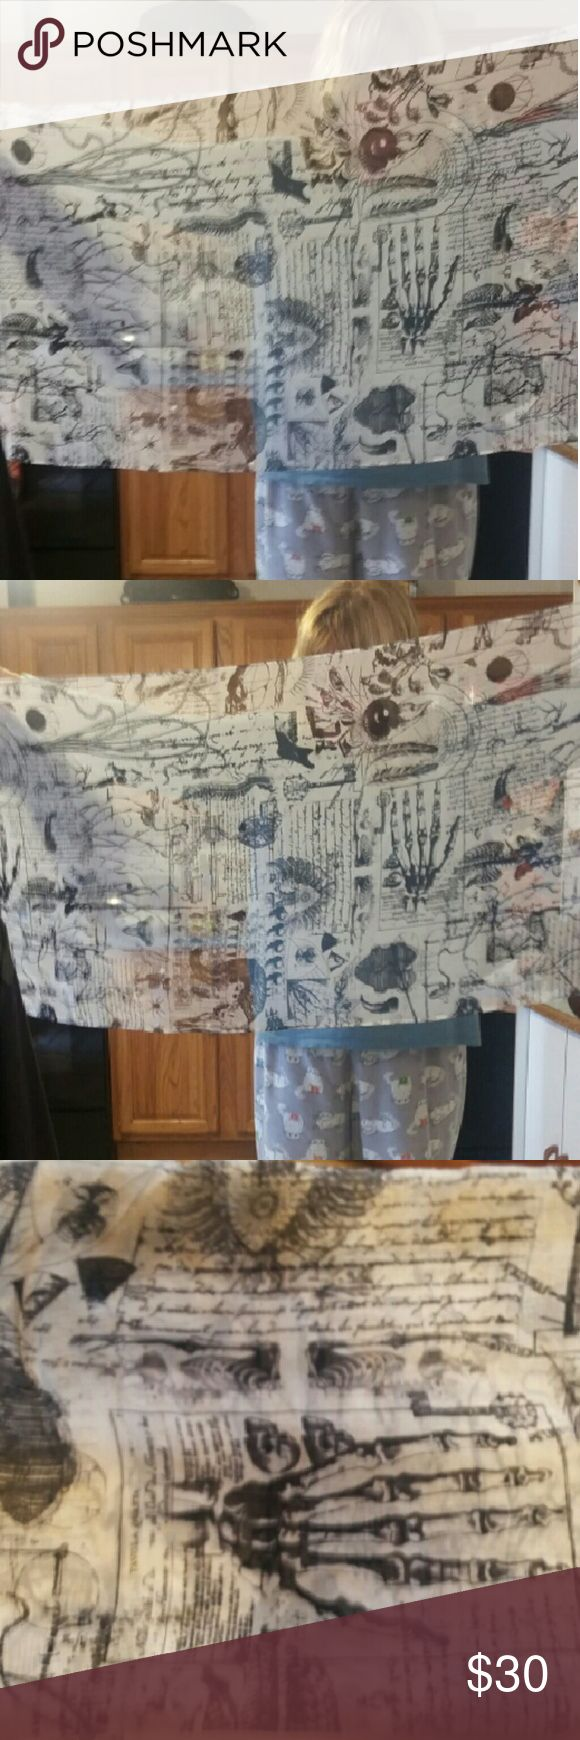 """Black and white scarf with bones and more Black and white scarf with bones and more.  Tavola Qvarta. Measures approximately 20"""" ? 71"""". Smoke-free home. EUC Accessories Scarves & Wraps"""